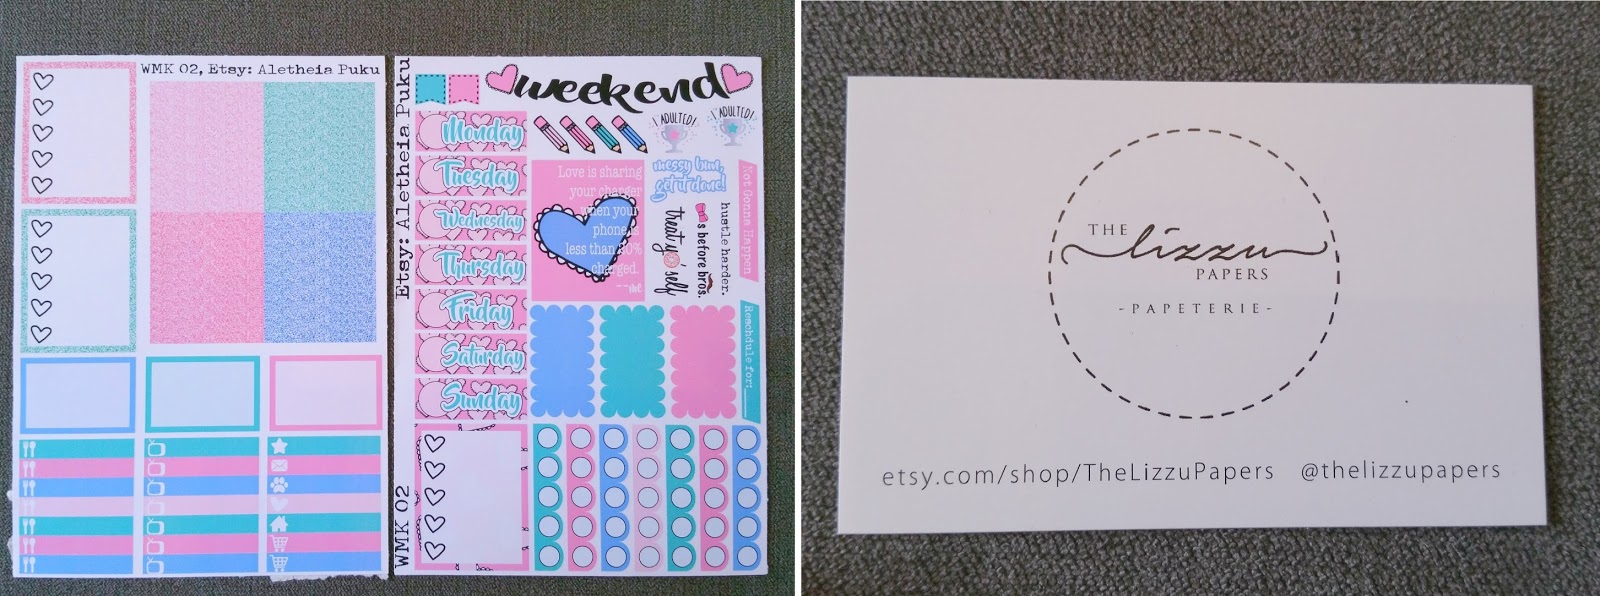 Paperpop.co.uk, planner stationery subscription box, Galentine's Day